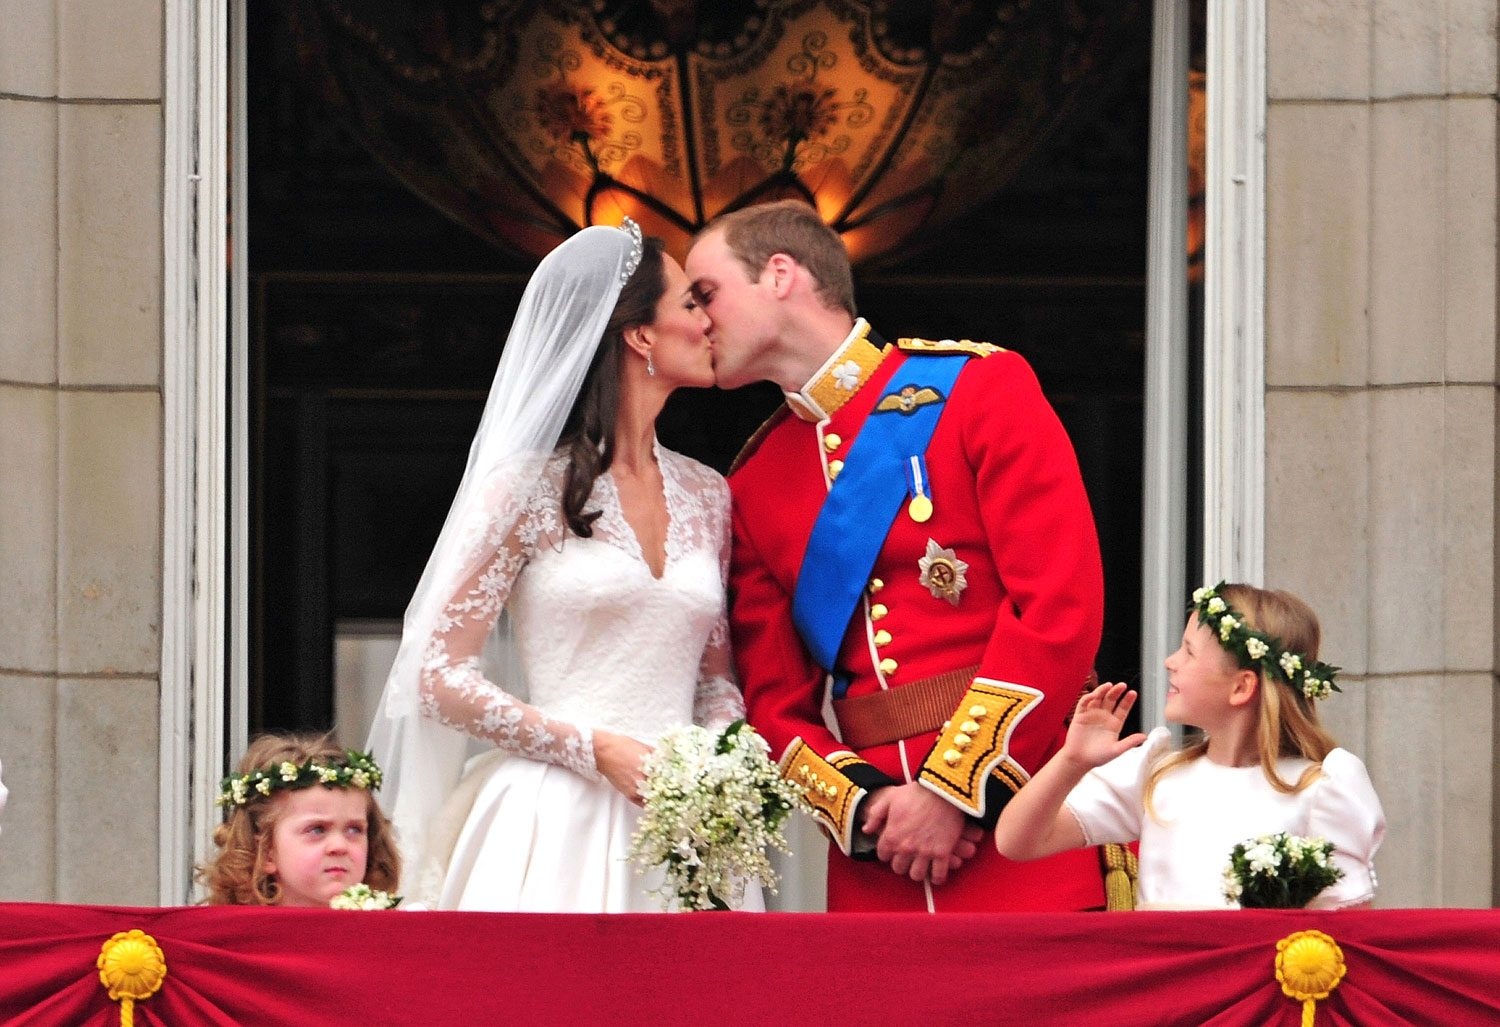 Wedding Gifts For Kate Middleton : Prince William, Duke of Cambridge and Catherine, Duchess of Cambridge ...